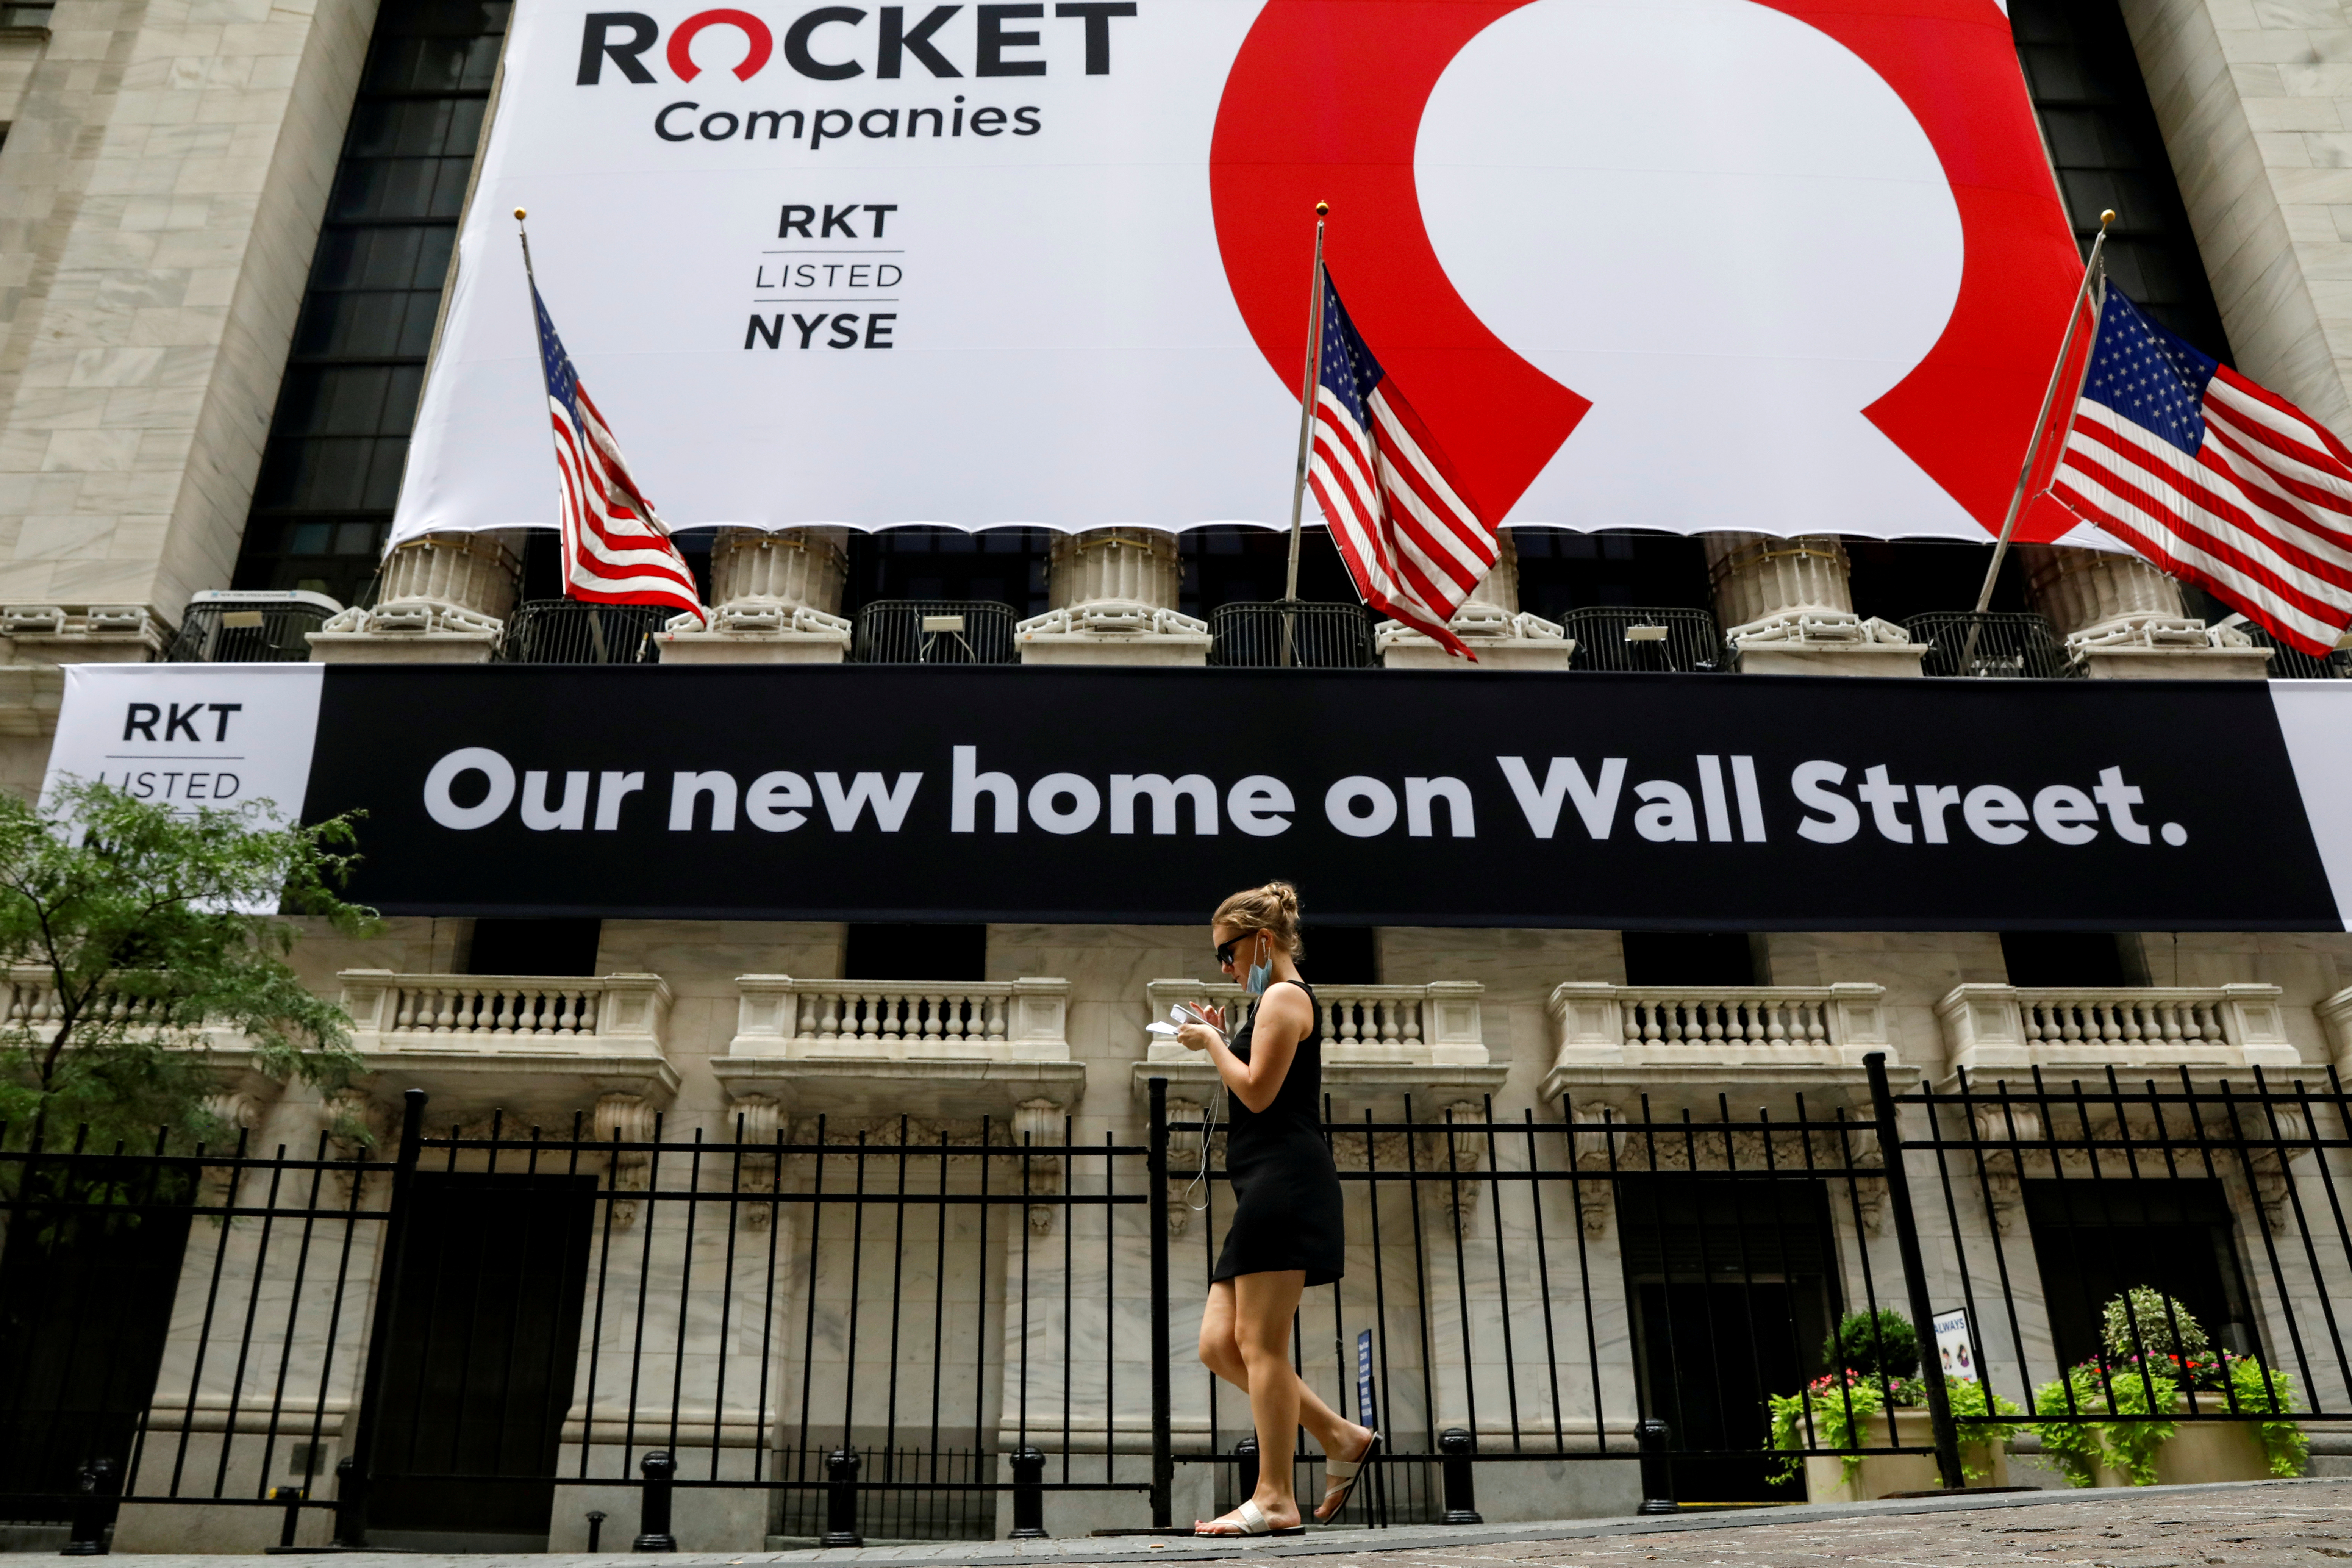 A banner celebrating Rocket Companies Inc., the parent company of U.S. mortgage lender Quicken Loans, IPO is seen on the front facade of the New York Stock Exchange (NYSE) in New York City, U.S., August 6, 2020. REUTERS/Brendan McDermid